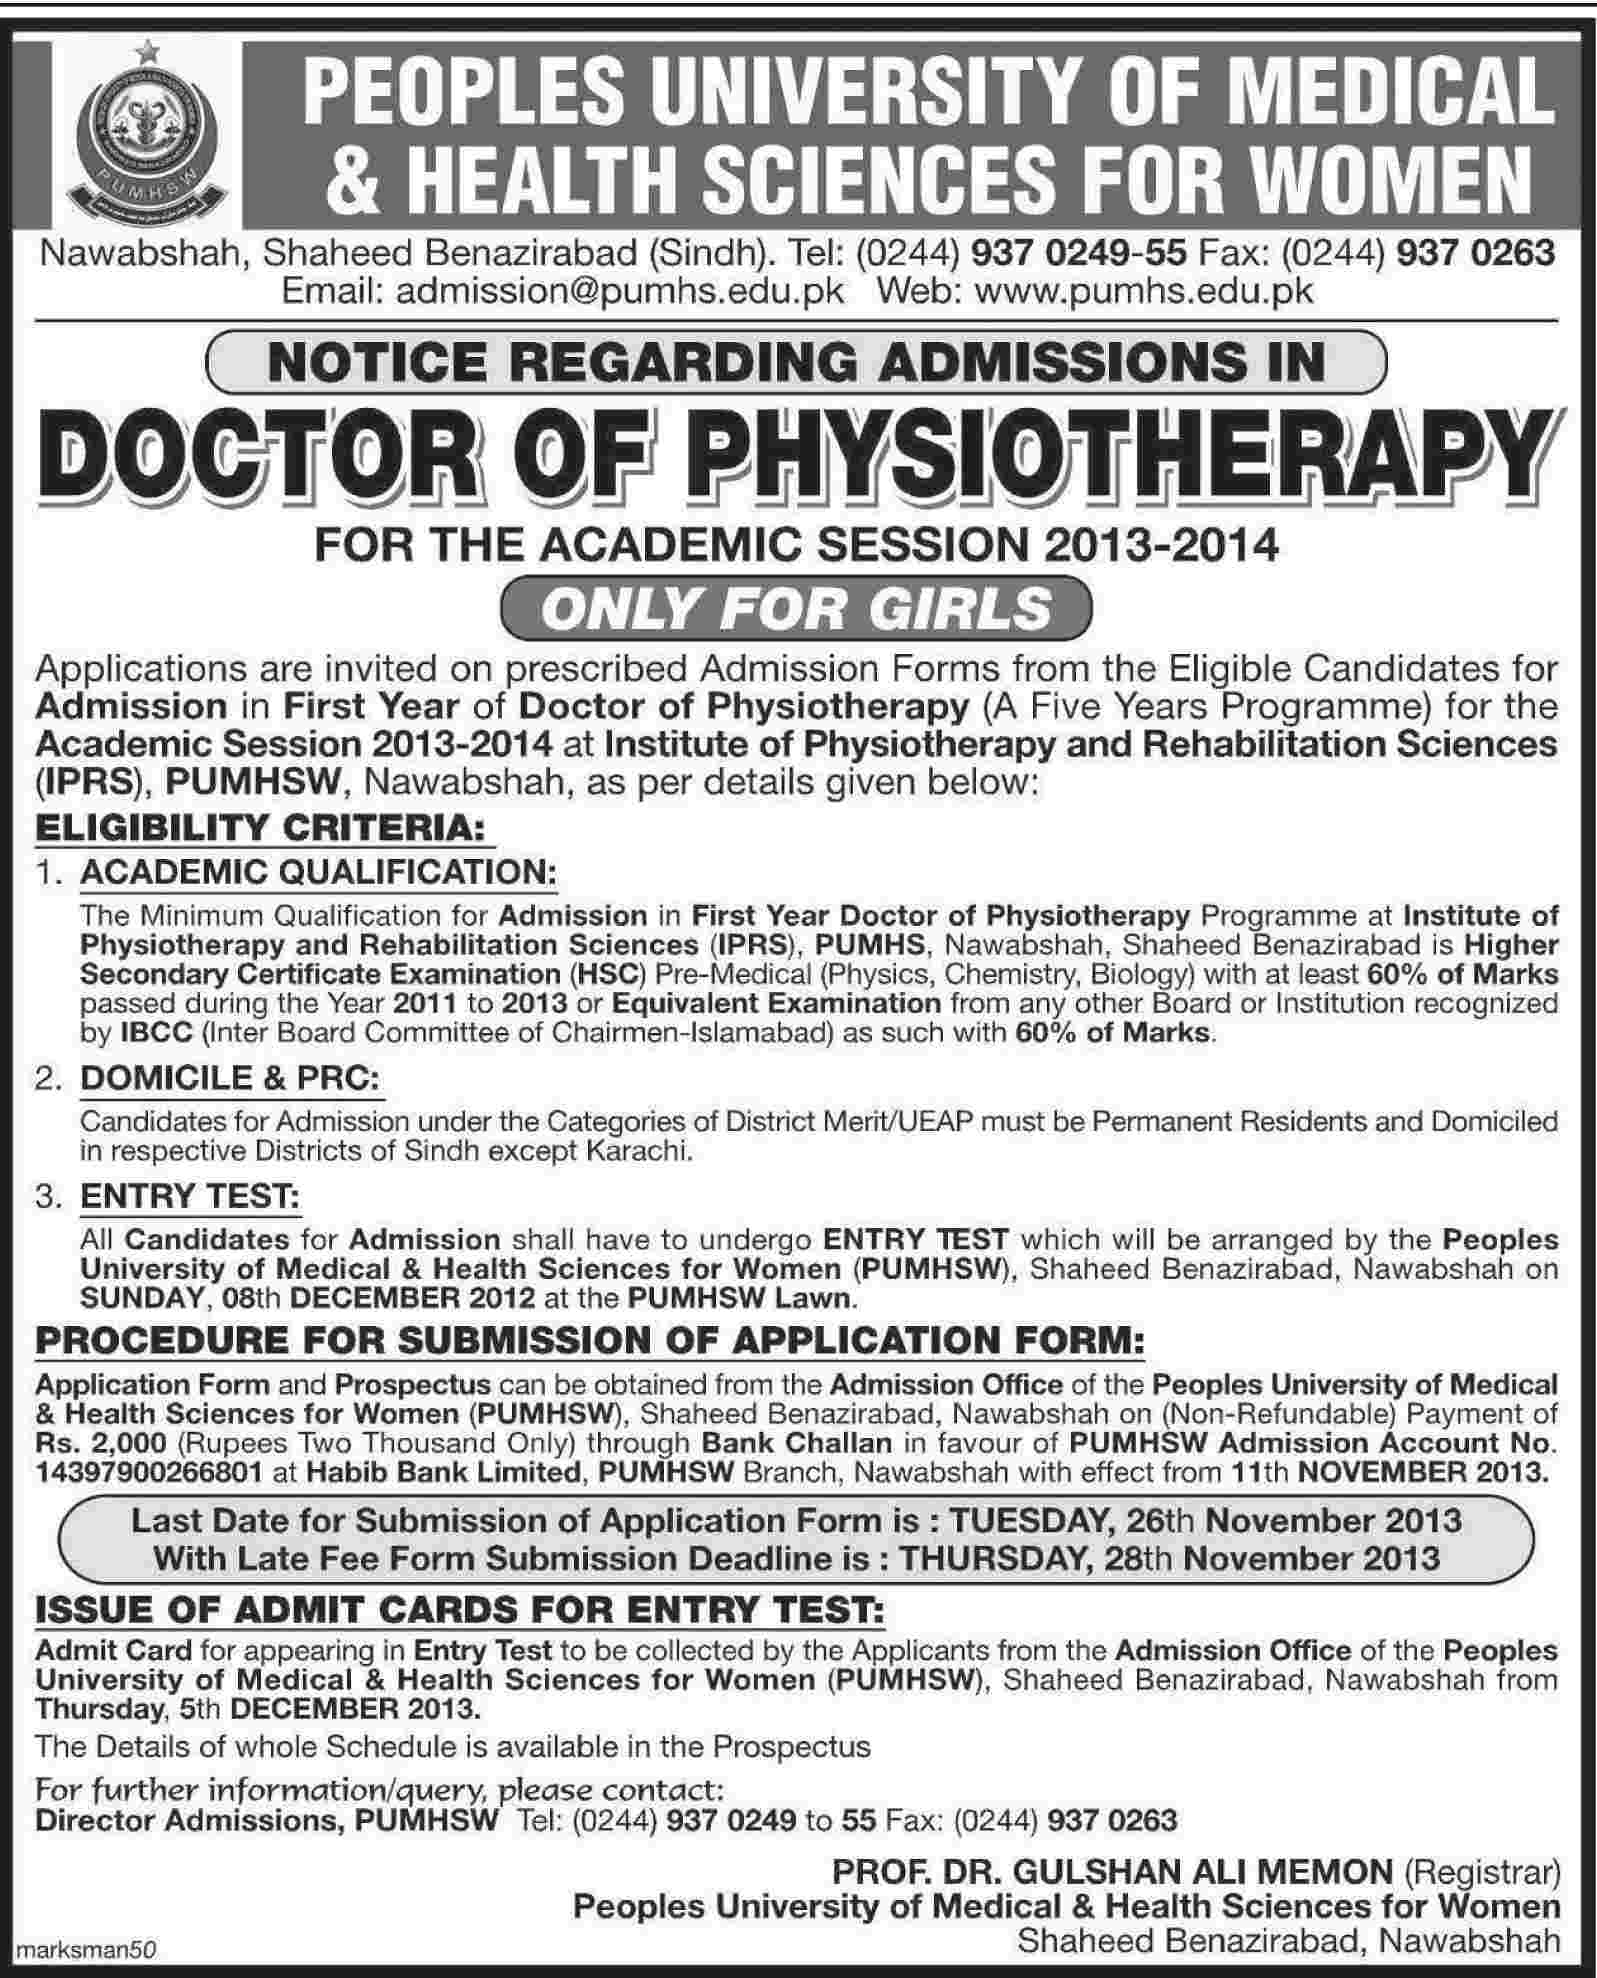 Peoples University of Medical & Health Sciences for Women Shaheed Benazirabad Admission Notice 2013 for Doctor of Physical Therapy (DPT)